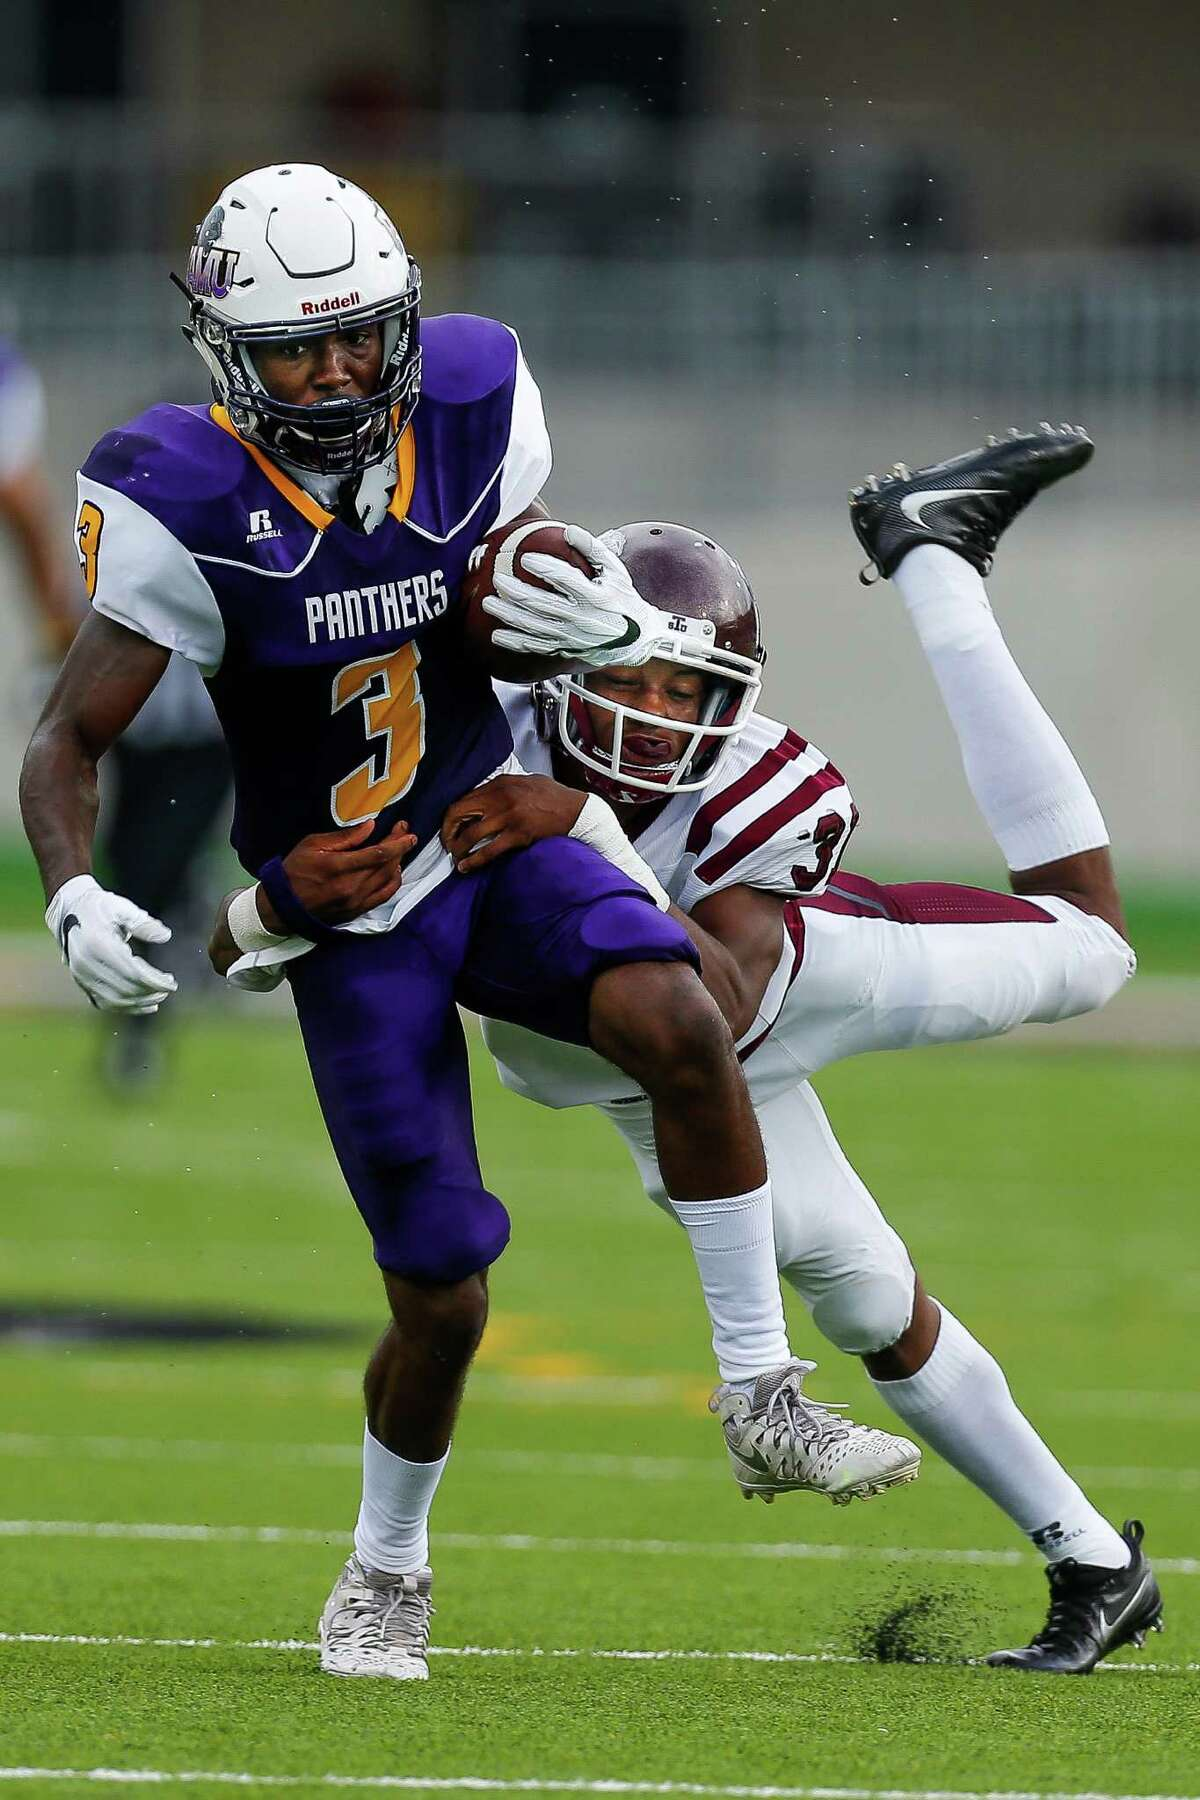 Texas Southern Tigers defensive back Andre Joseph (31) tackles Prairie View Am Panthers wide receiver Joshua Simmons (3) after a catch as the Prairie View Am Panthers take on the Texas Southern Tigers at Panther Stadium at Blackshear Field Sunday, September 4, 2016 in Prairie View. ( Michael Ciaglo / Houston Chronicle )